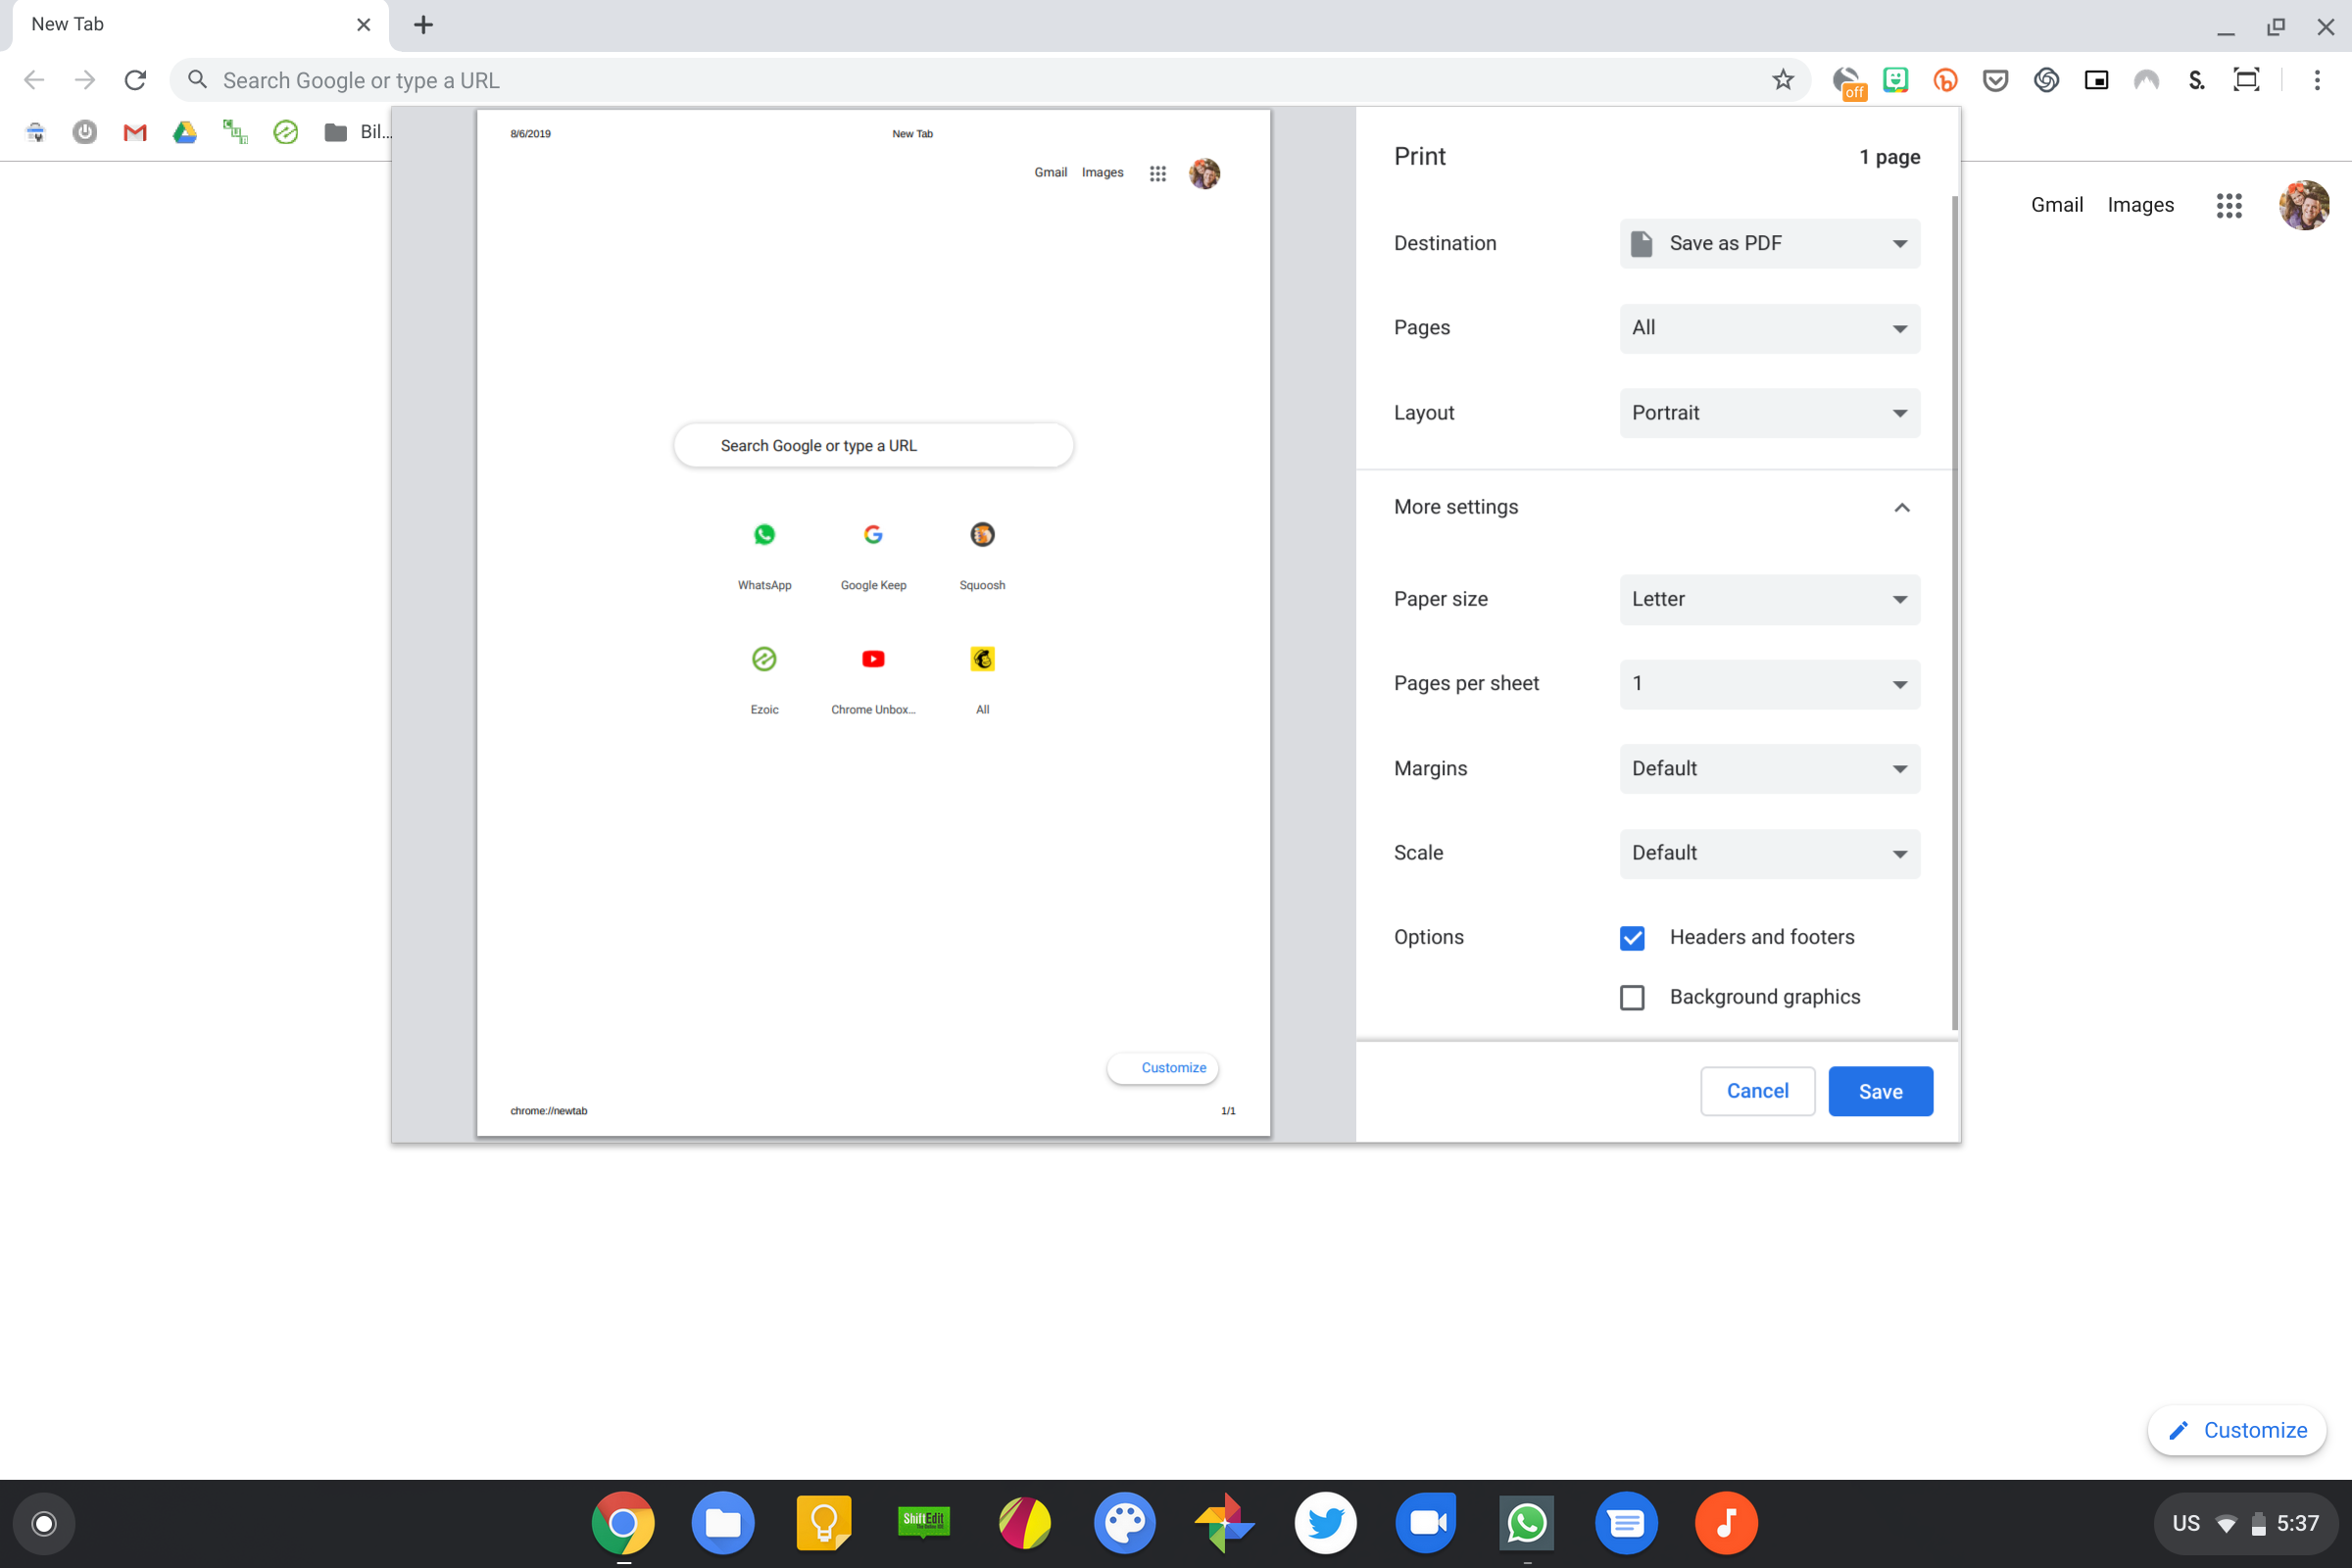 New Material Design print preview UI shows up in Chrome OS Dev Channel